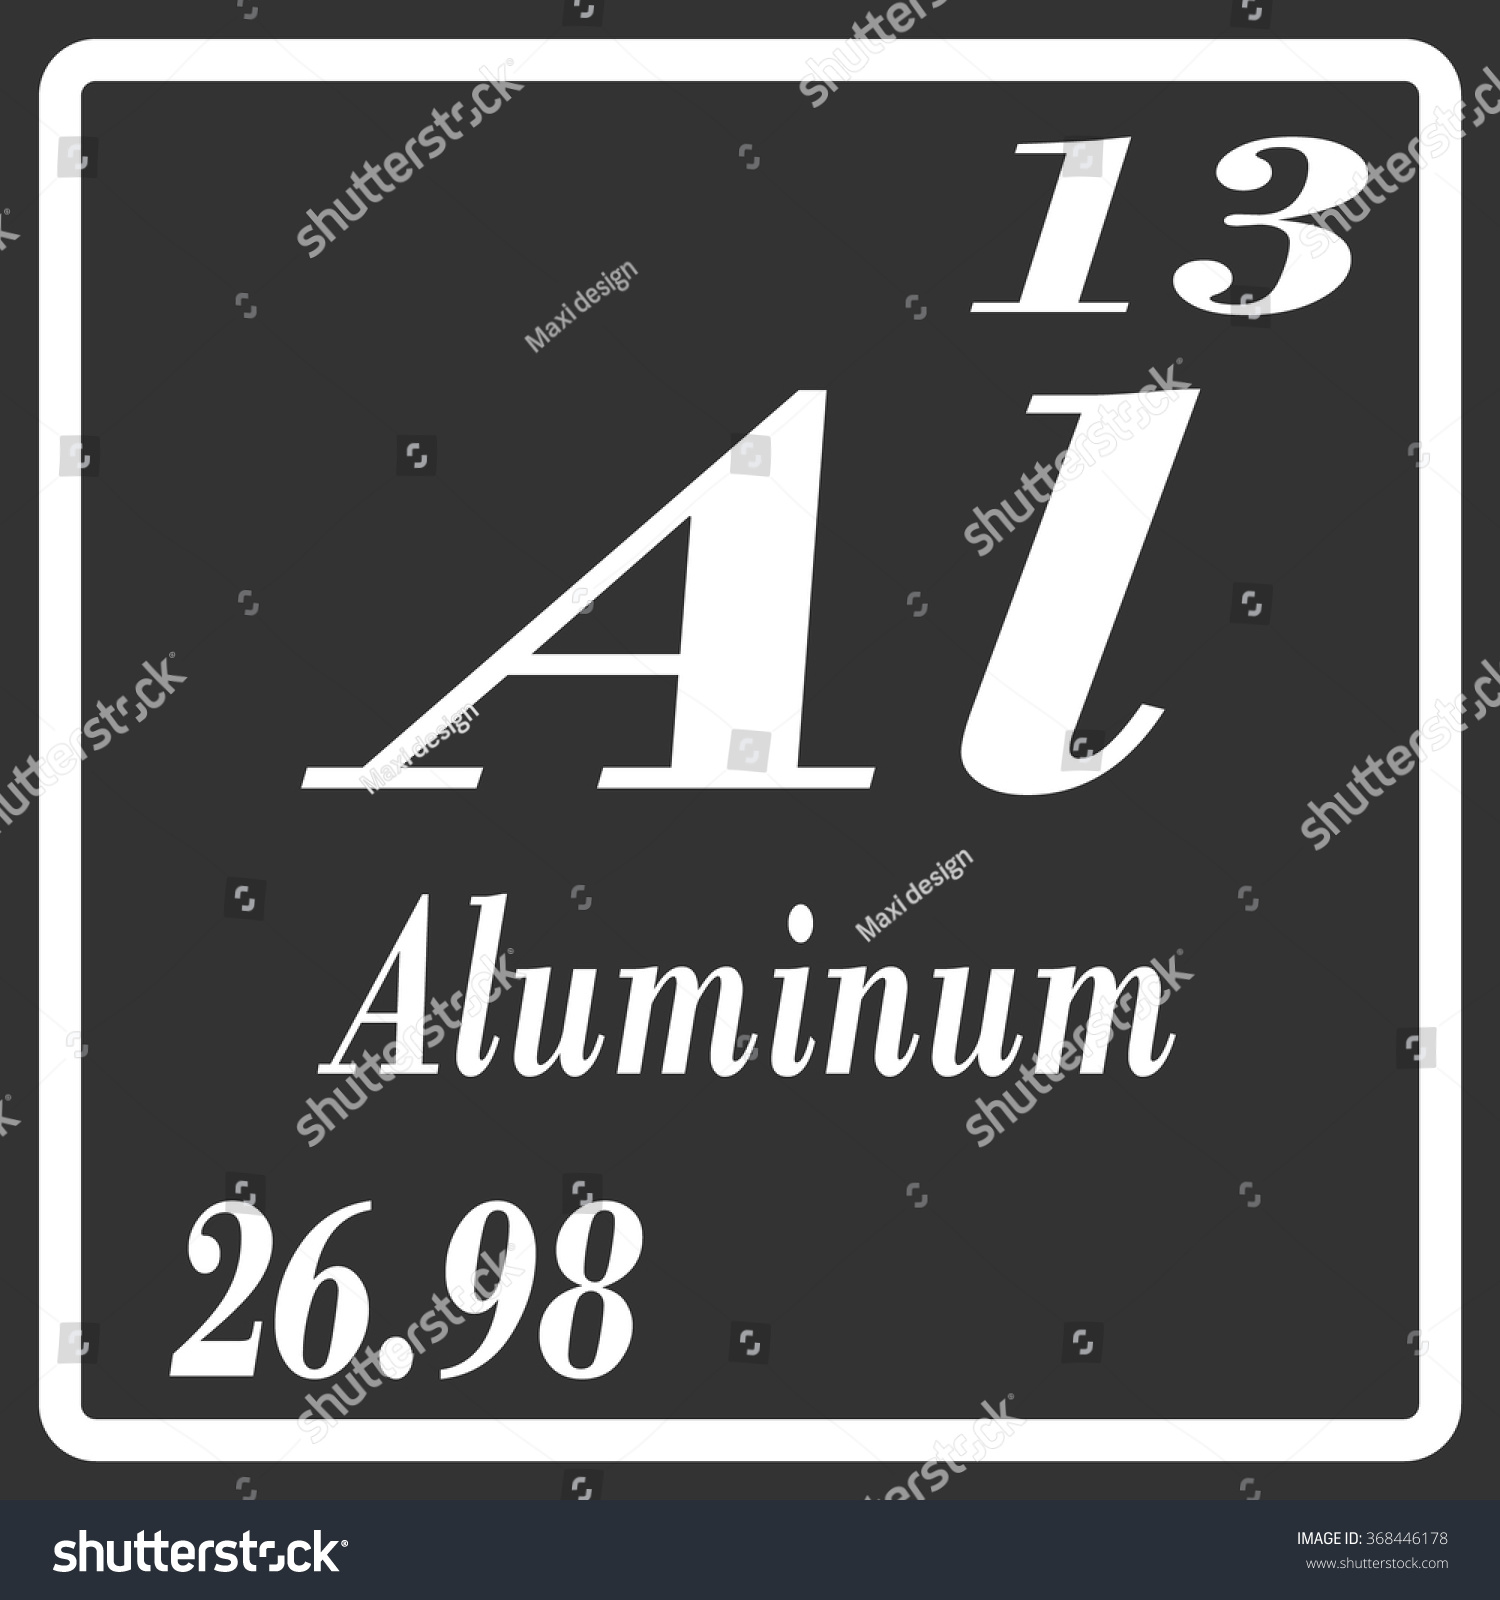 Periodic table elements aluminum stock vector 368446178 shutterstock periodic table of elements aluminum gamestrikefo Image collections